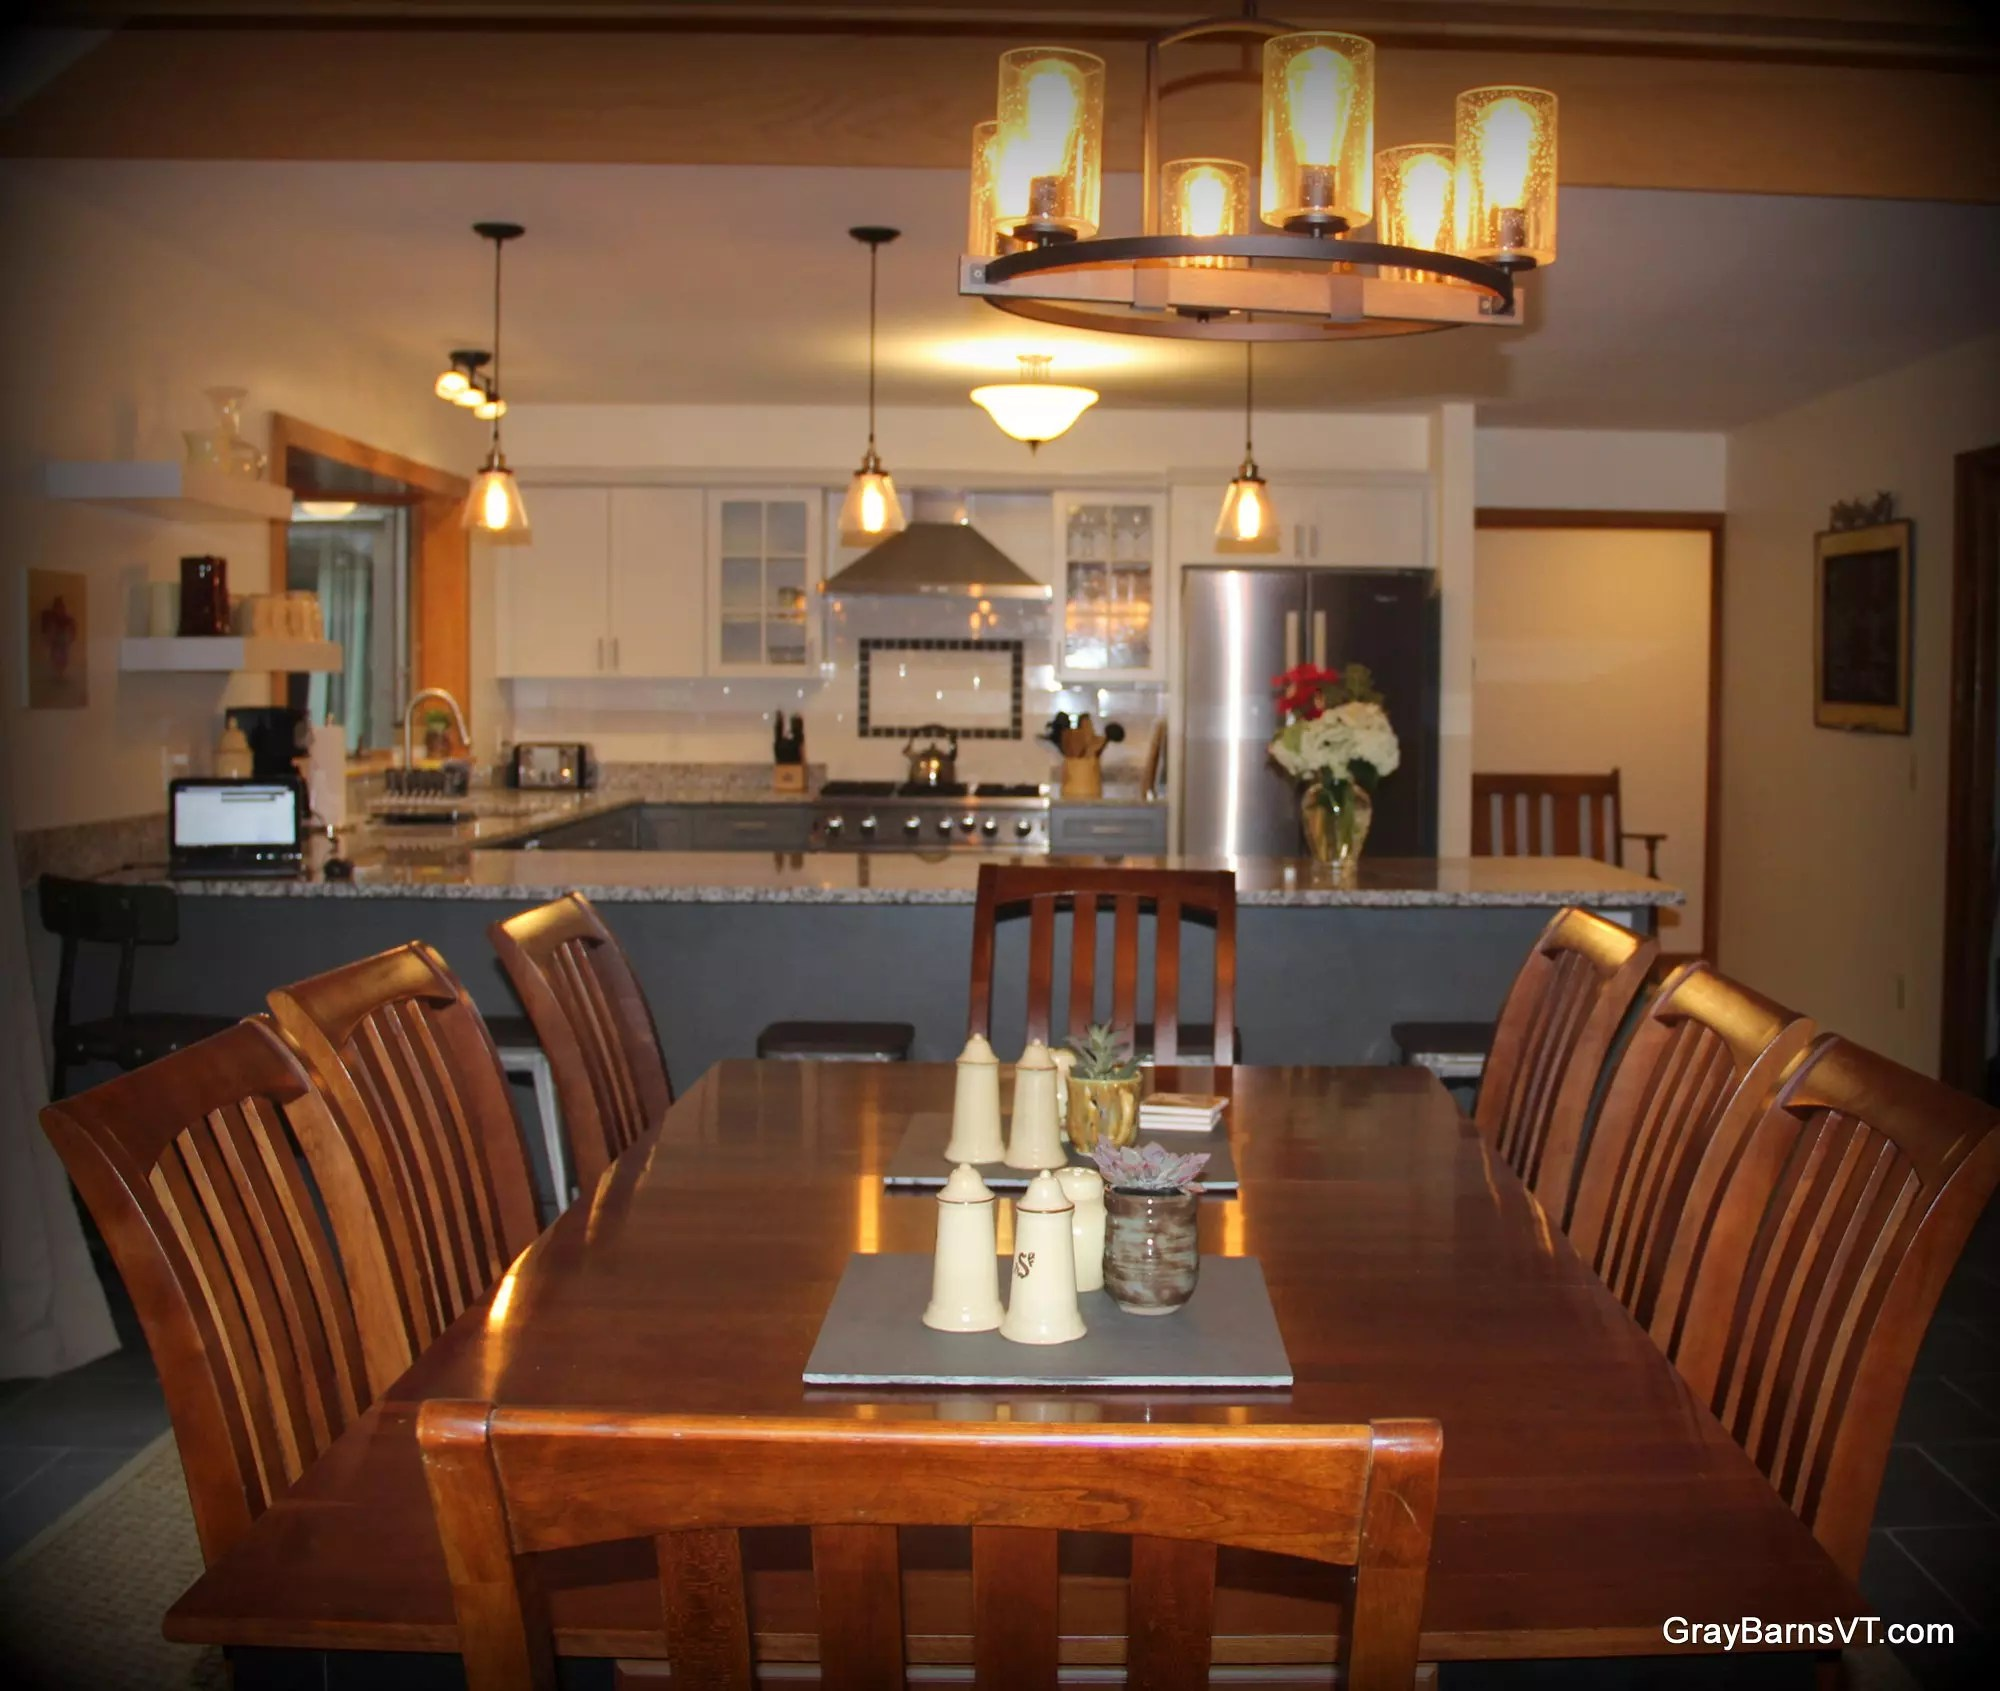 Aerie dining & kitchen